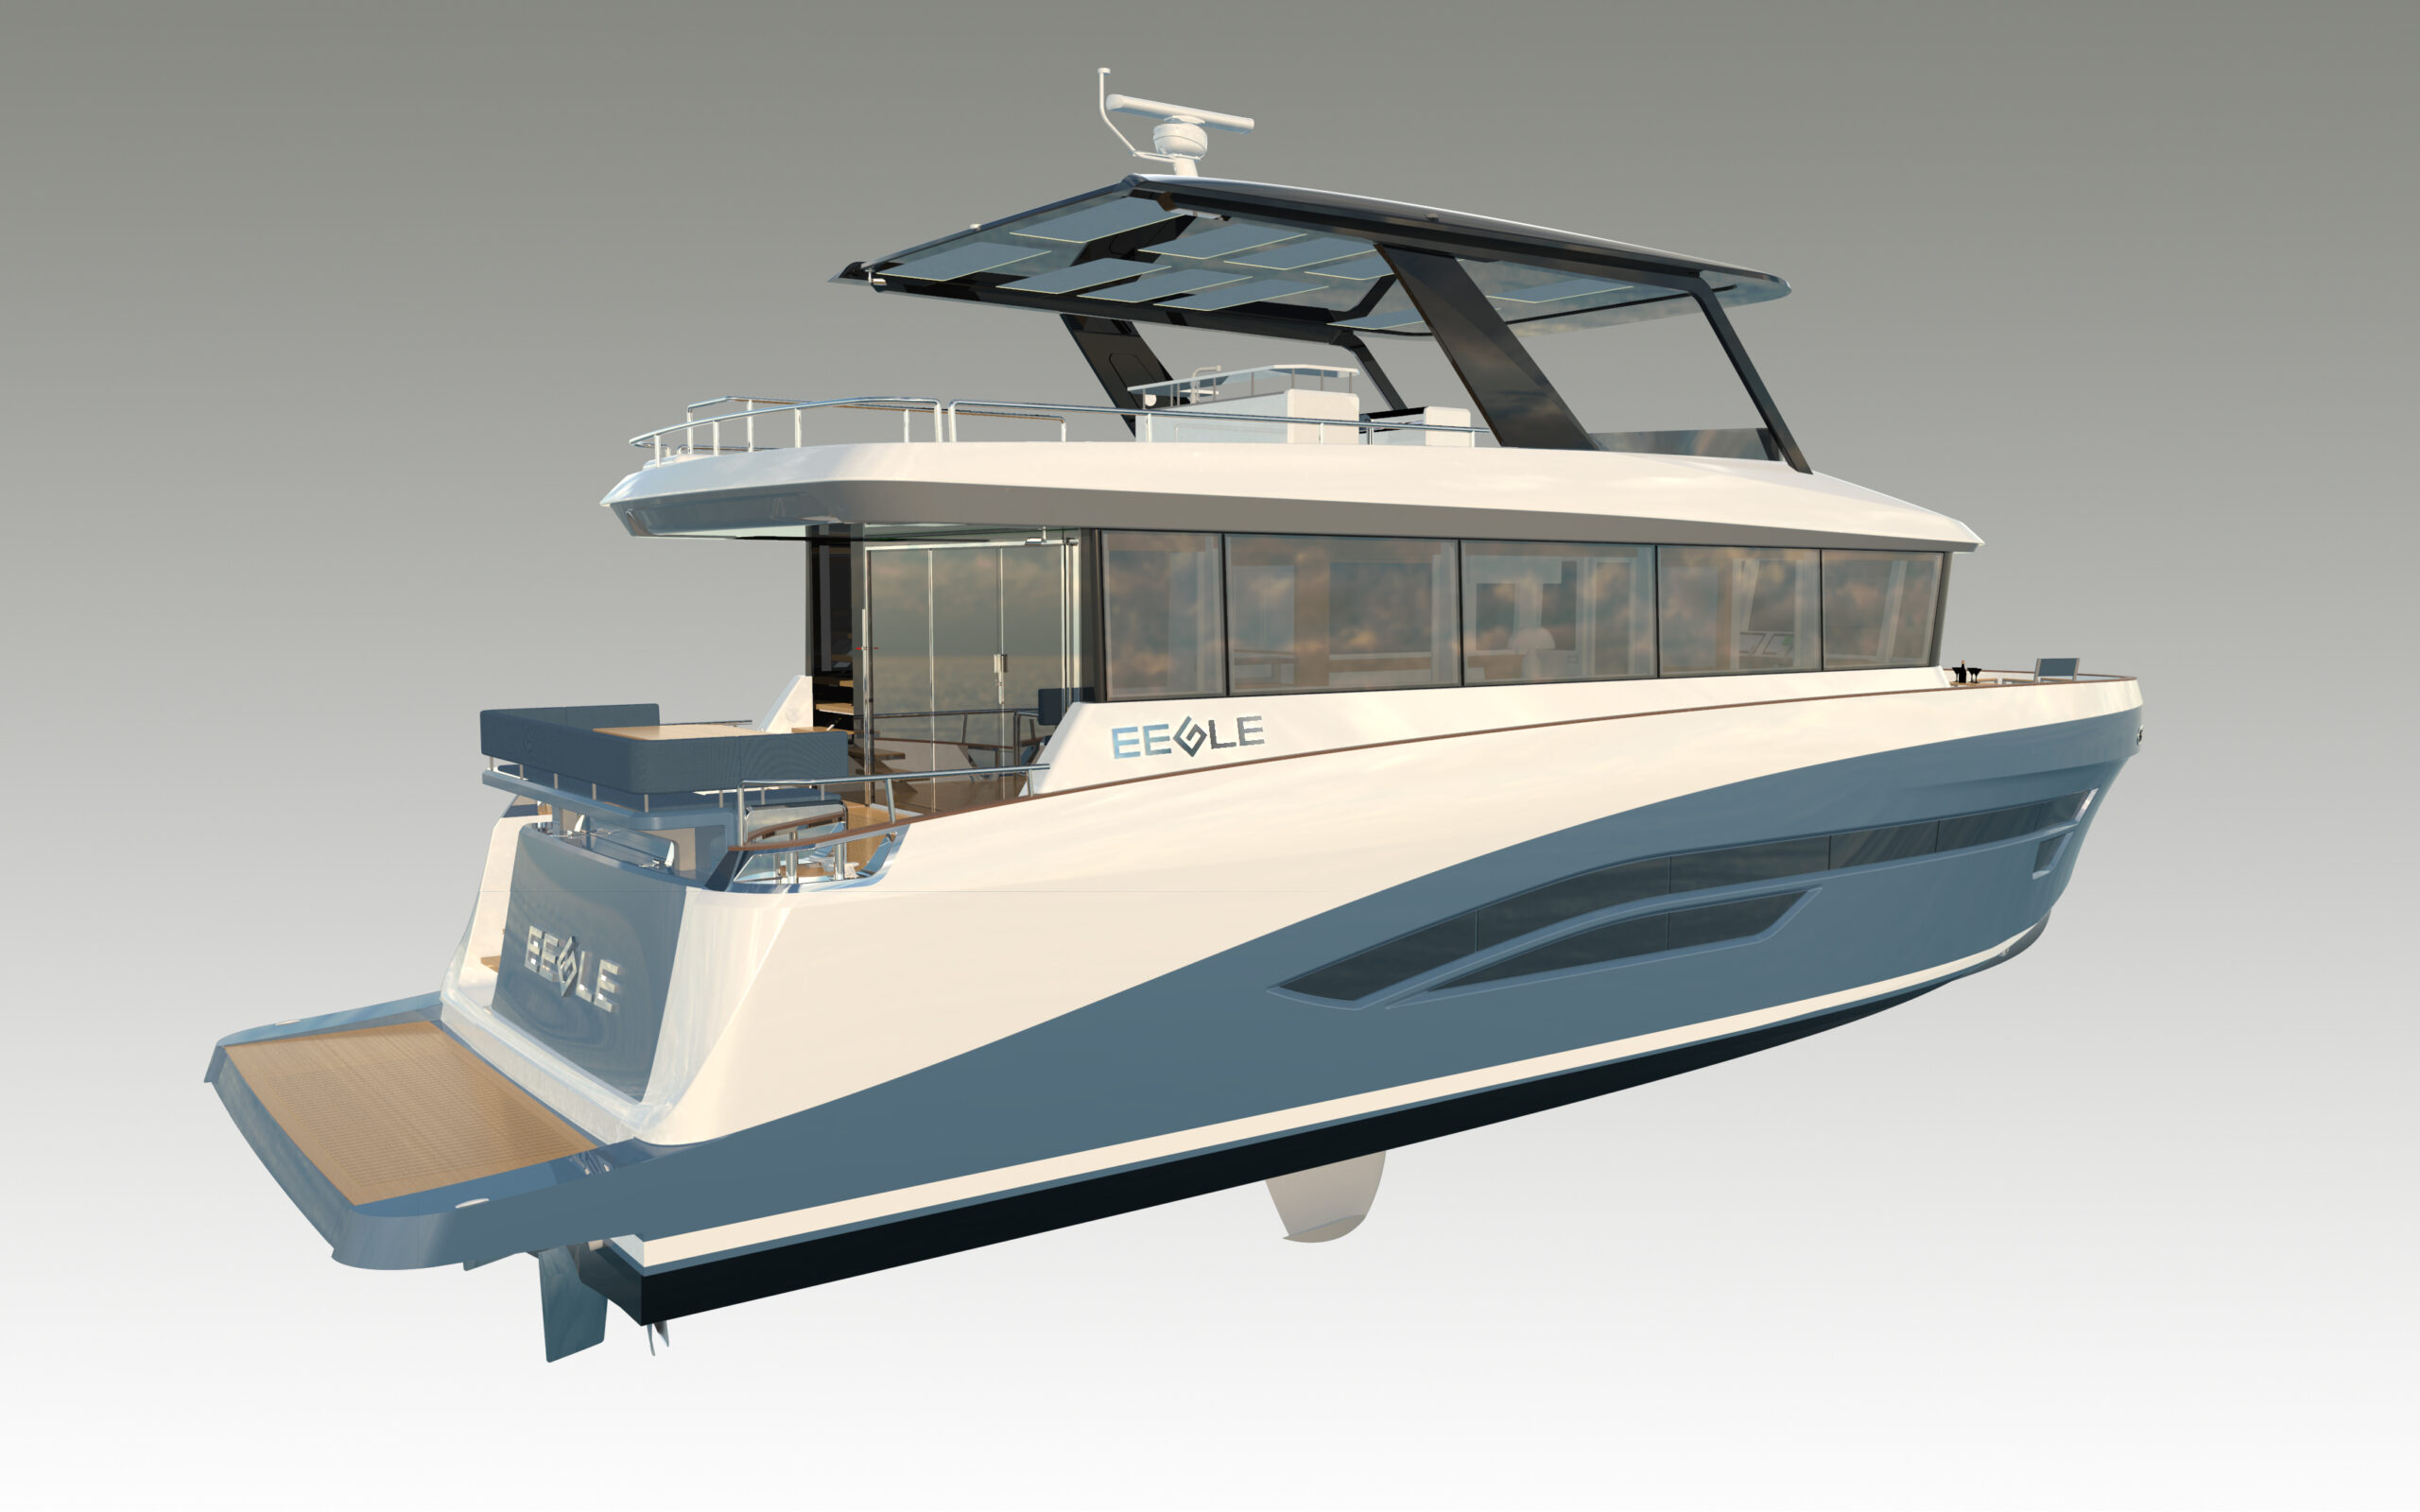 render of Eegle from BYD aft angle